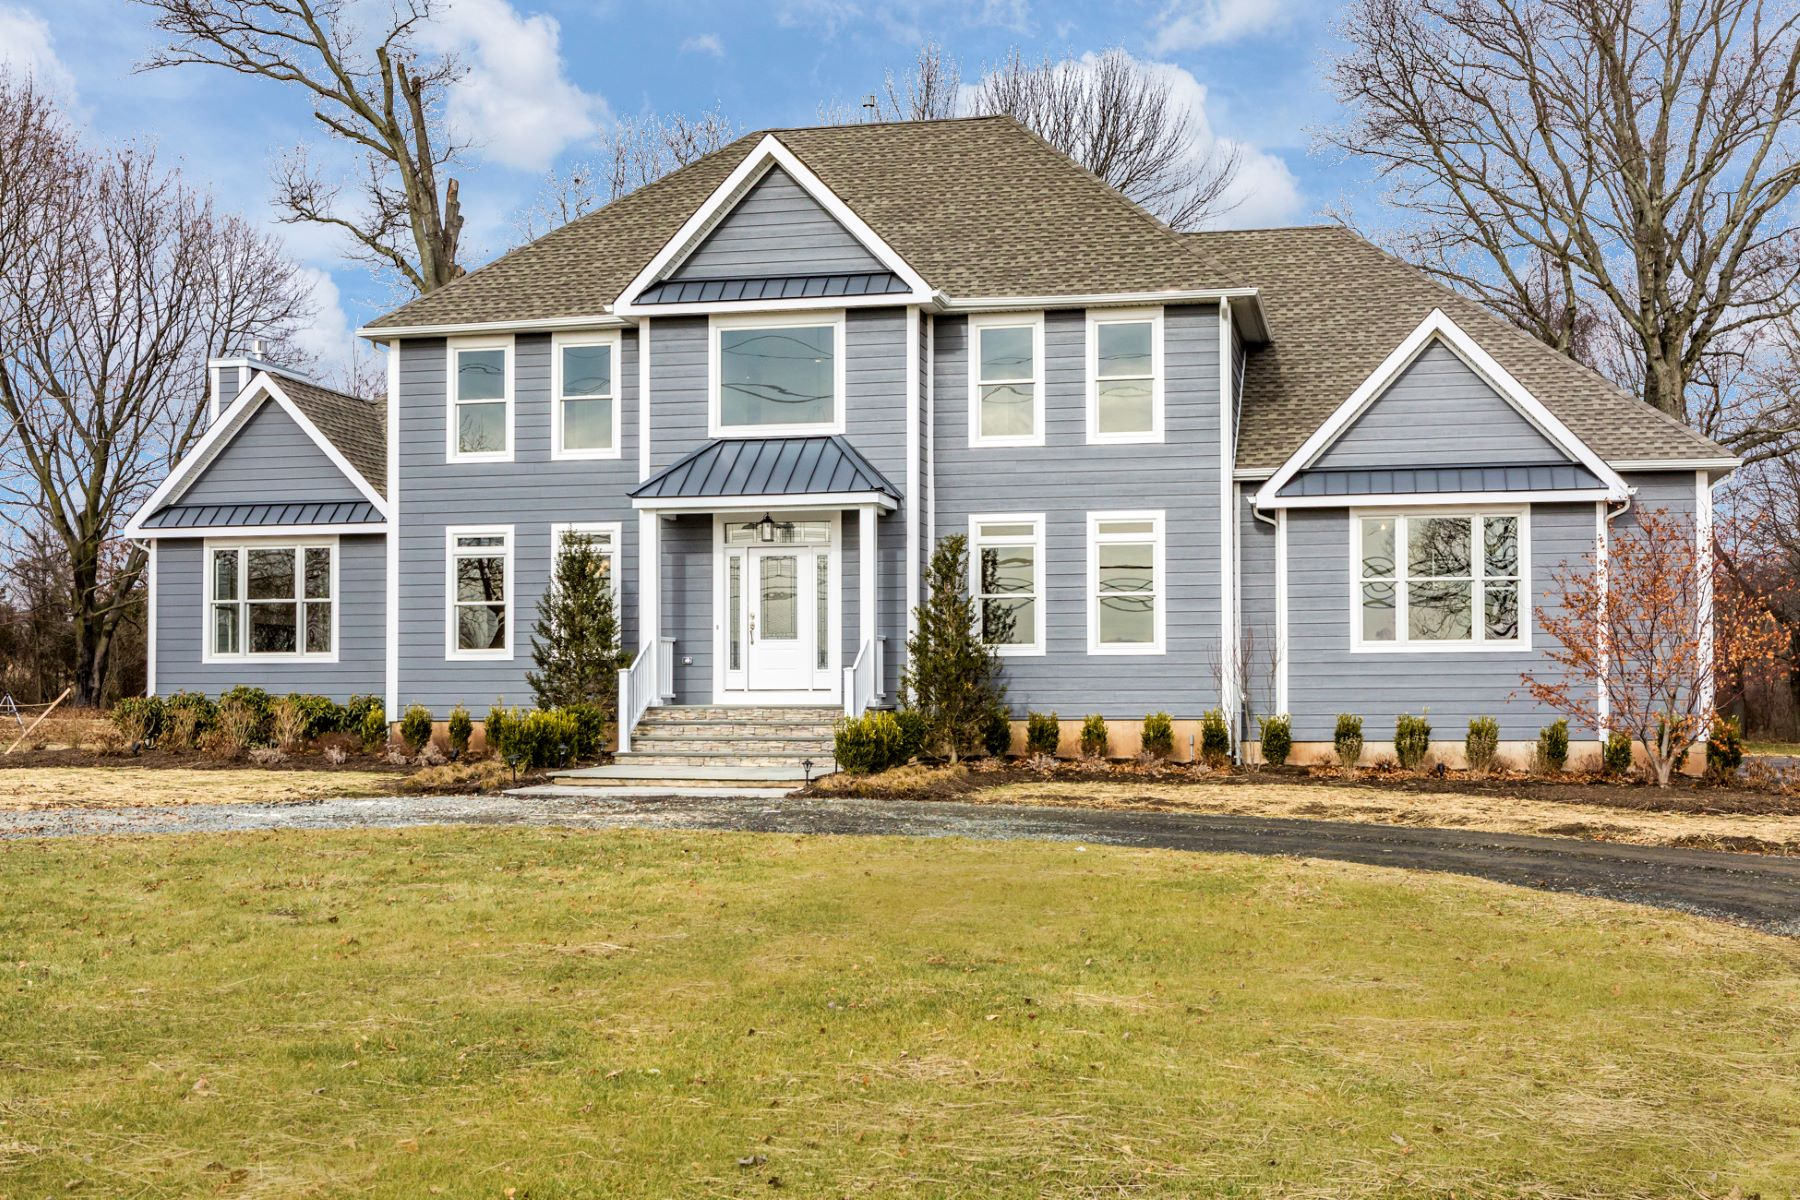 Maison unifamiliale pour l Vente à Elegant Addition to a Stretch of Fine Properties 9 Elm Ridge Road, Pennington, New Jersey 08534 États-UnisDans/Autour: Hopewell Township